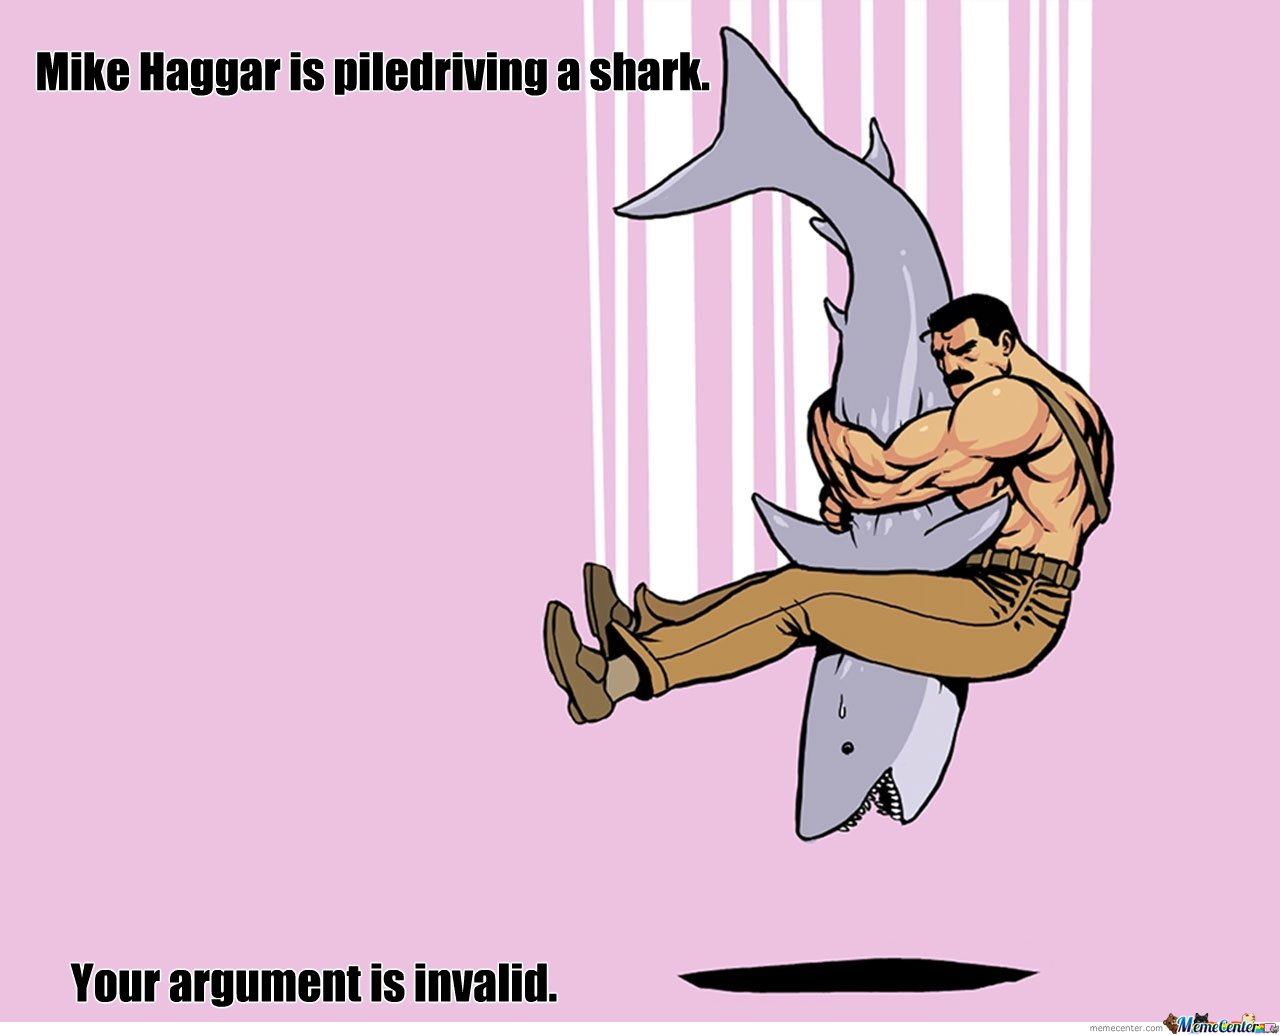 Piledriving a shark